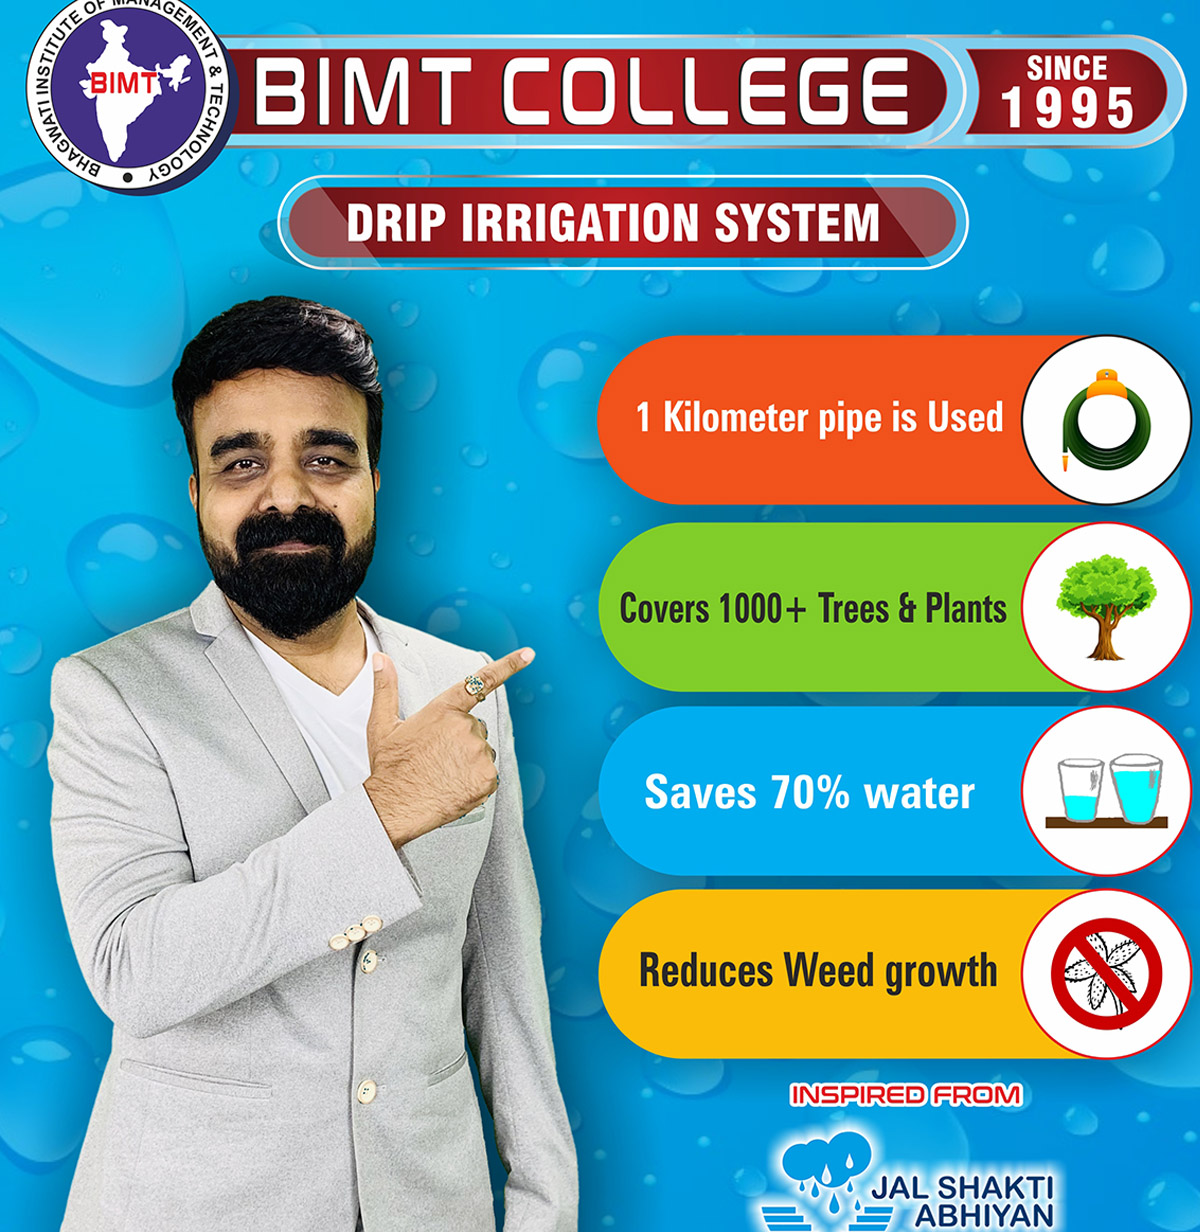 FACTS ABOUT BIMT